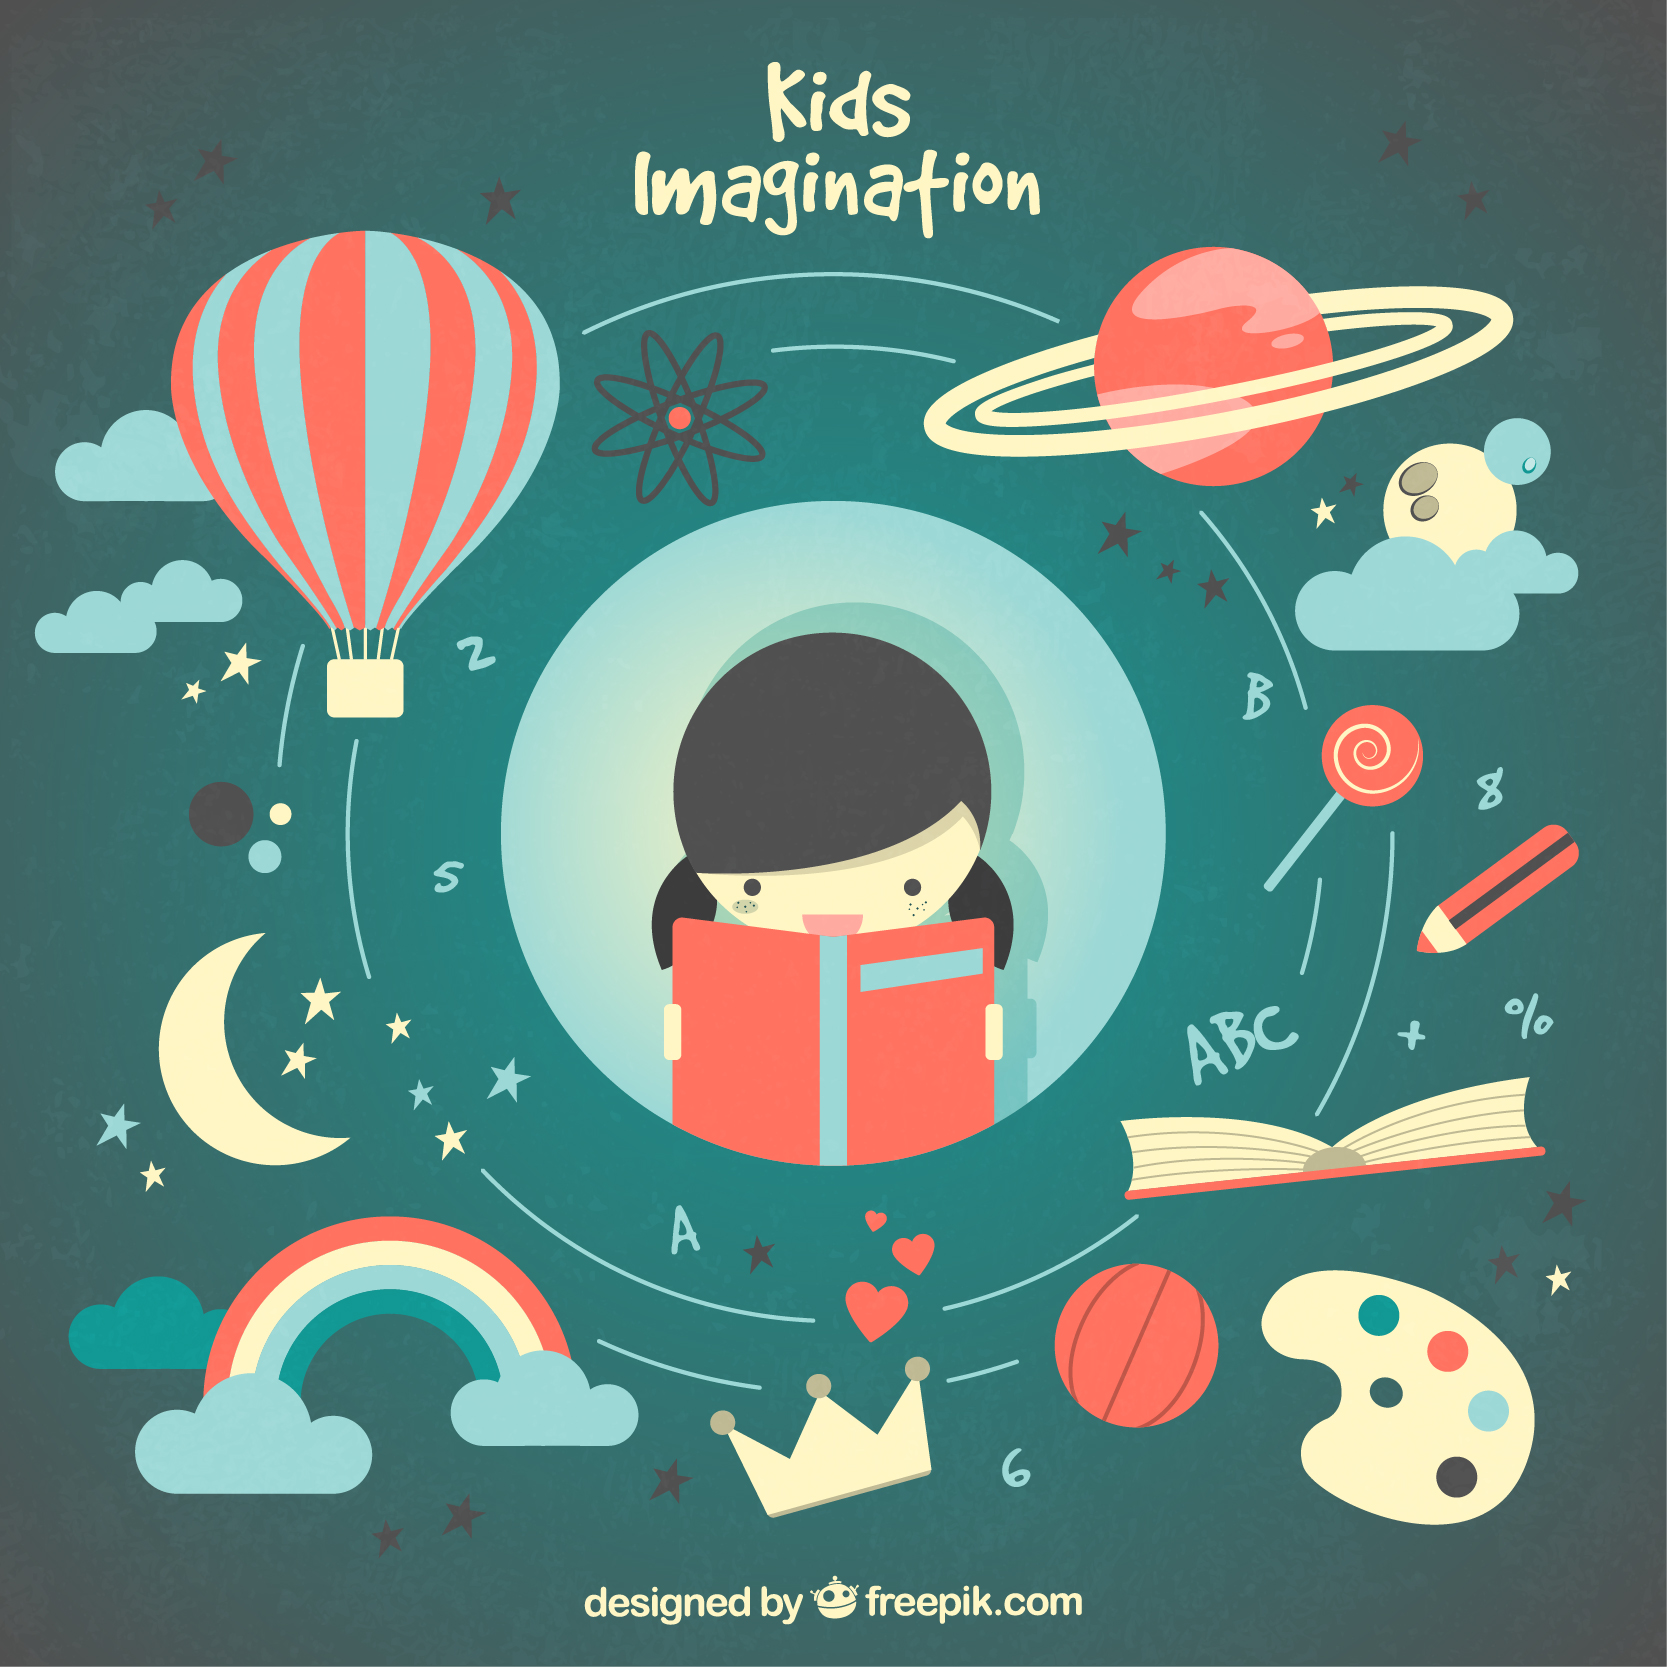 Kids imagination